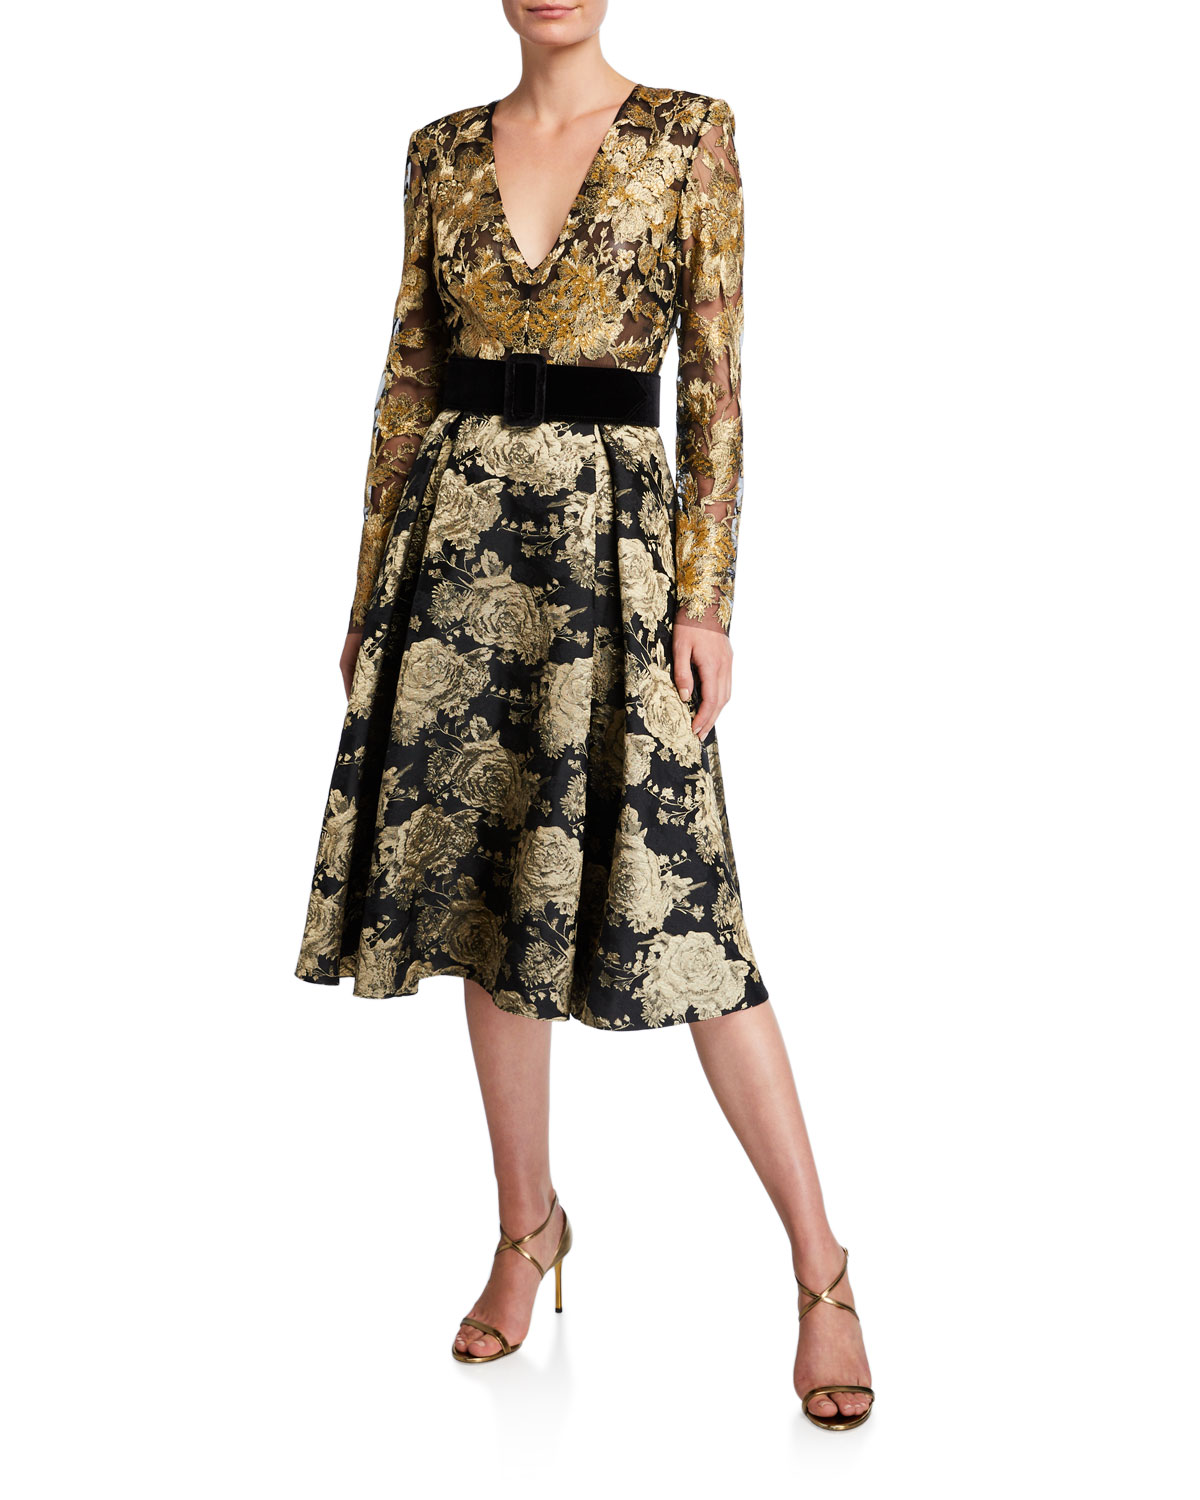 Badgley Mischka Dresses V-NECK LONG-SLEEVE FLORAL & LACE BELTED COCKTAIL DRESS